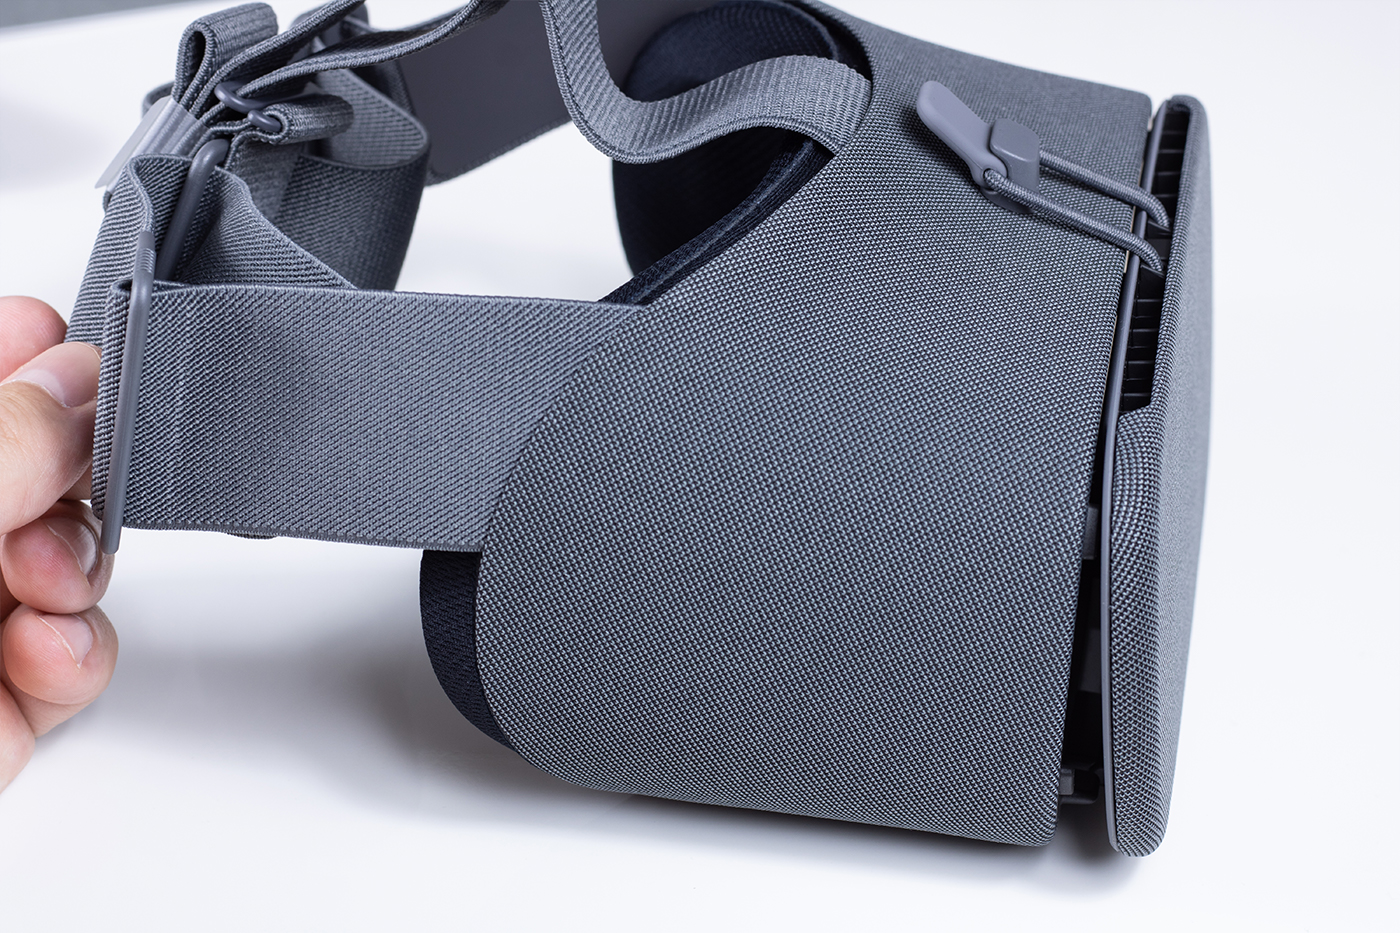 Google Daydream View Review - WhatVR